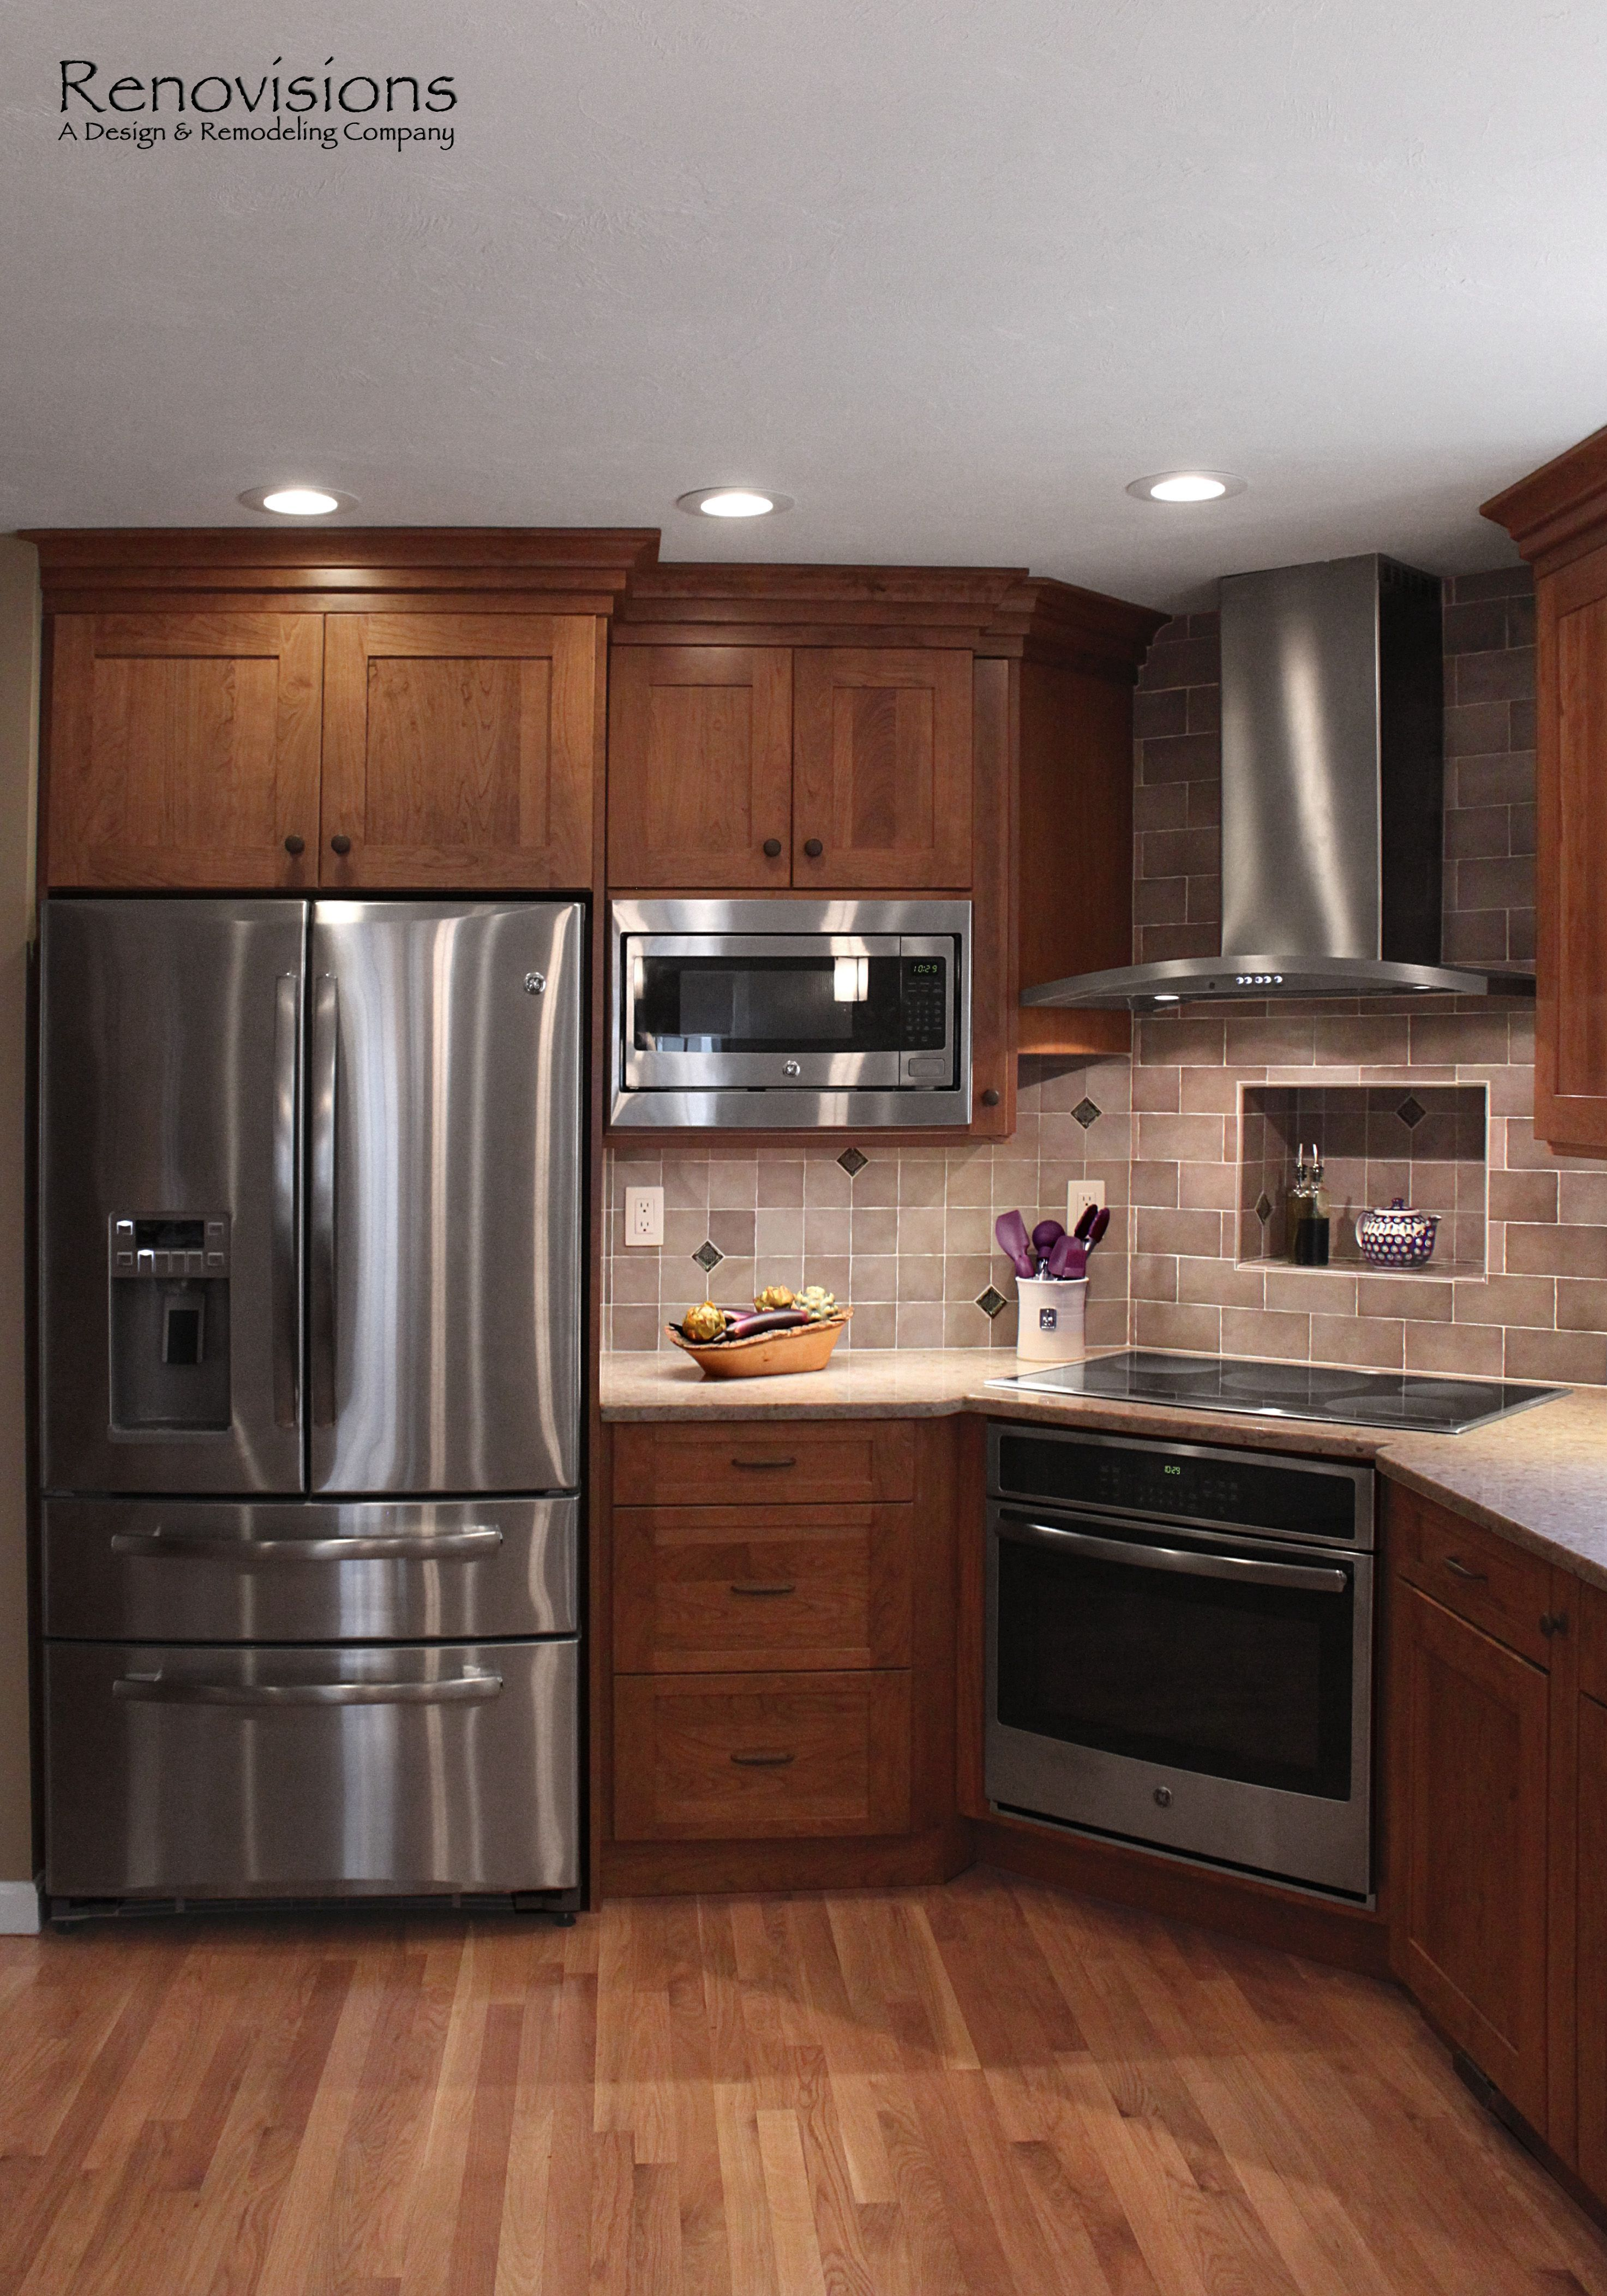 Best 20 Kitchen Cabinets Designs Ideas With Photo Gallery 25 Best Cherry Kitchen Cabinets Ideas On Internet Tags C Kitchen Layout Home Kitchens Corner Stove